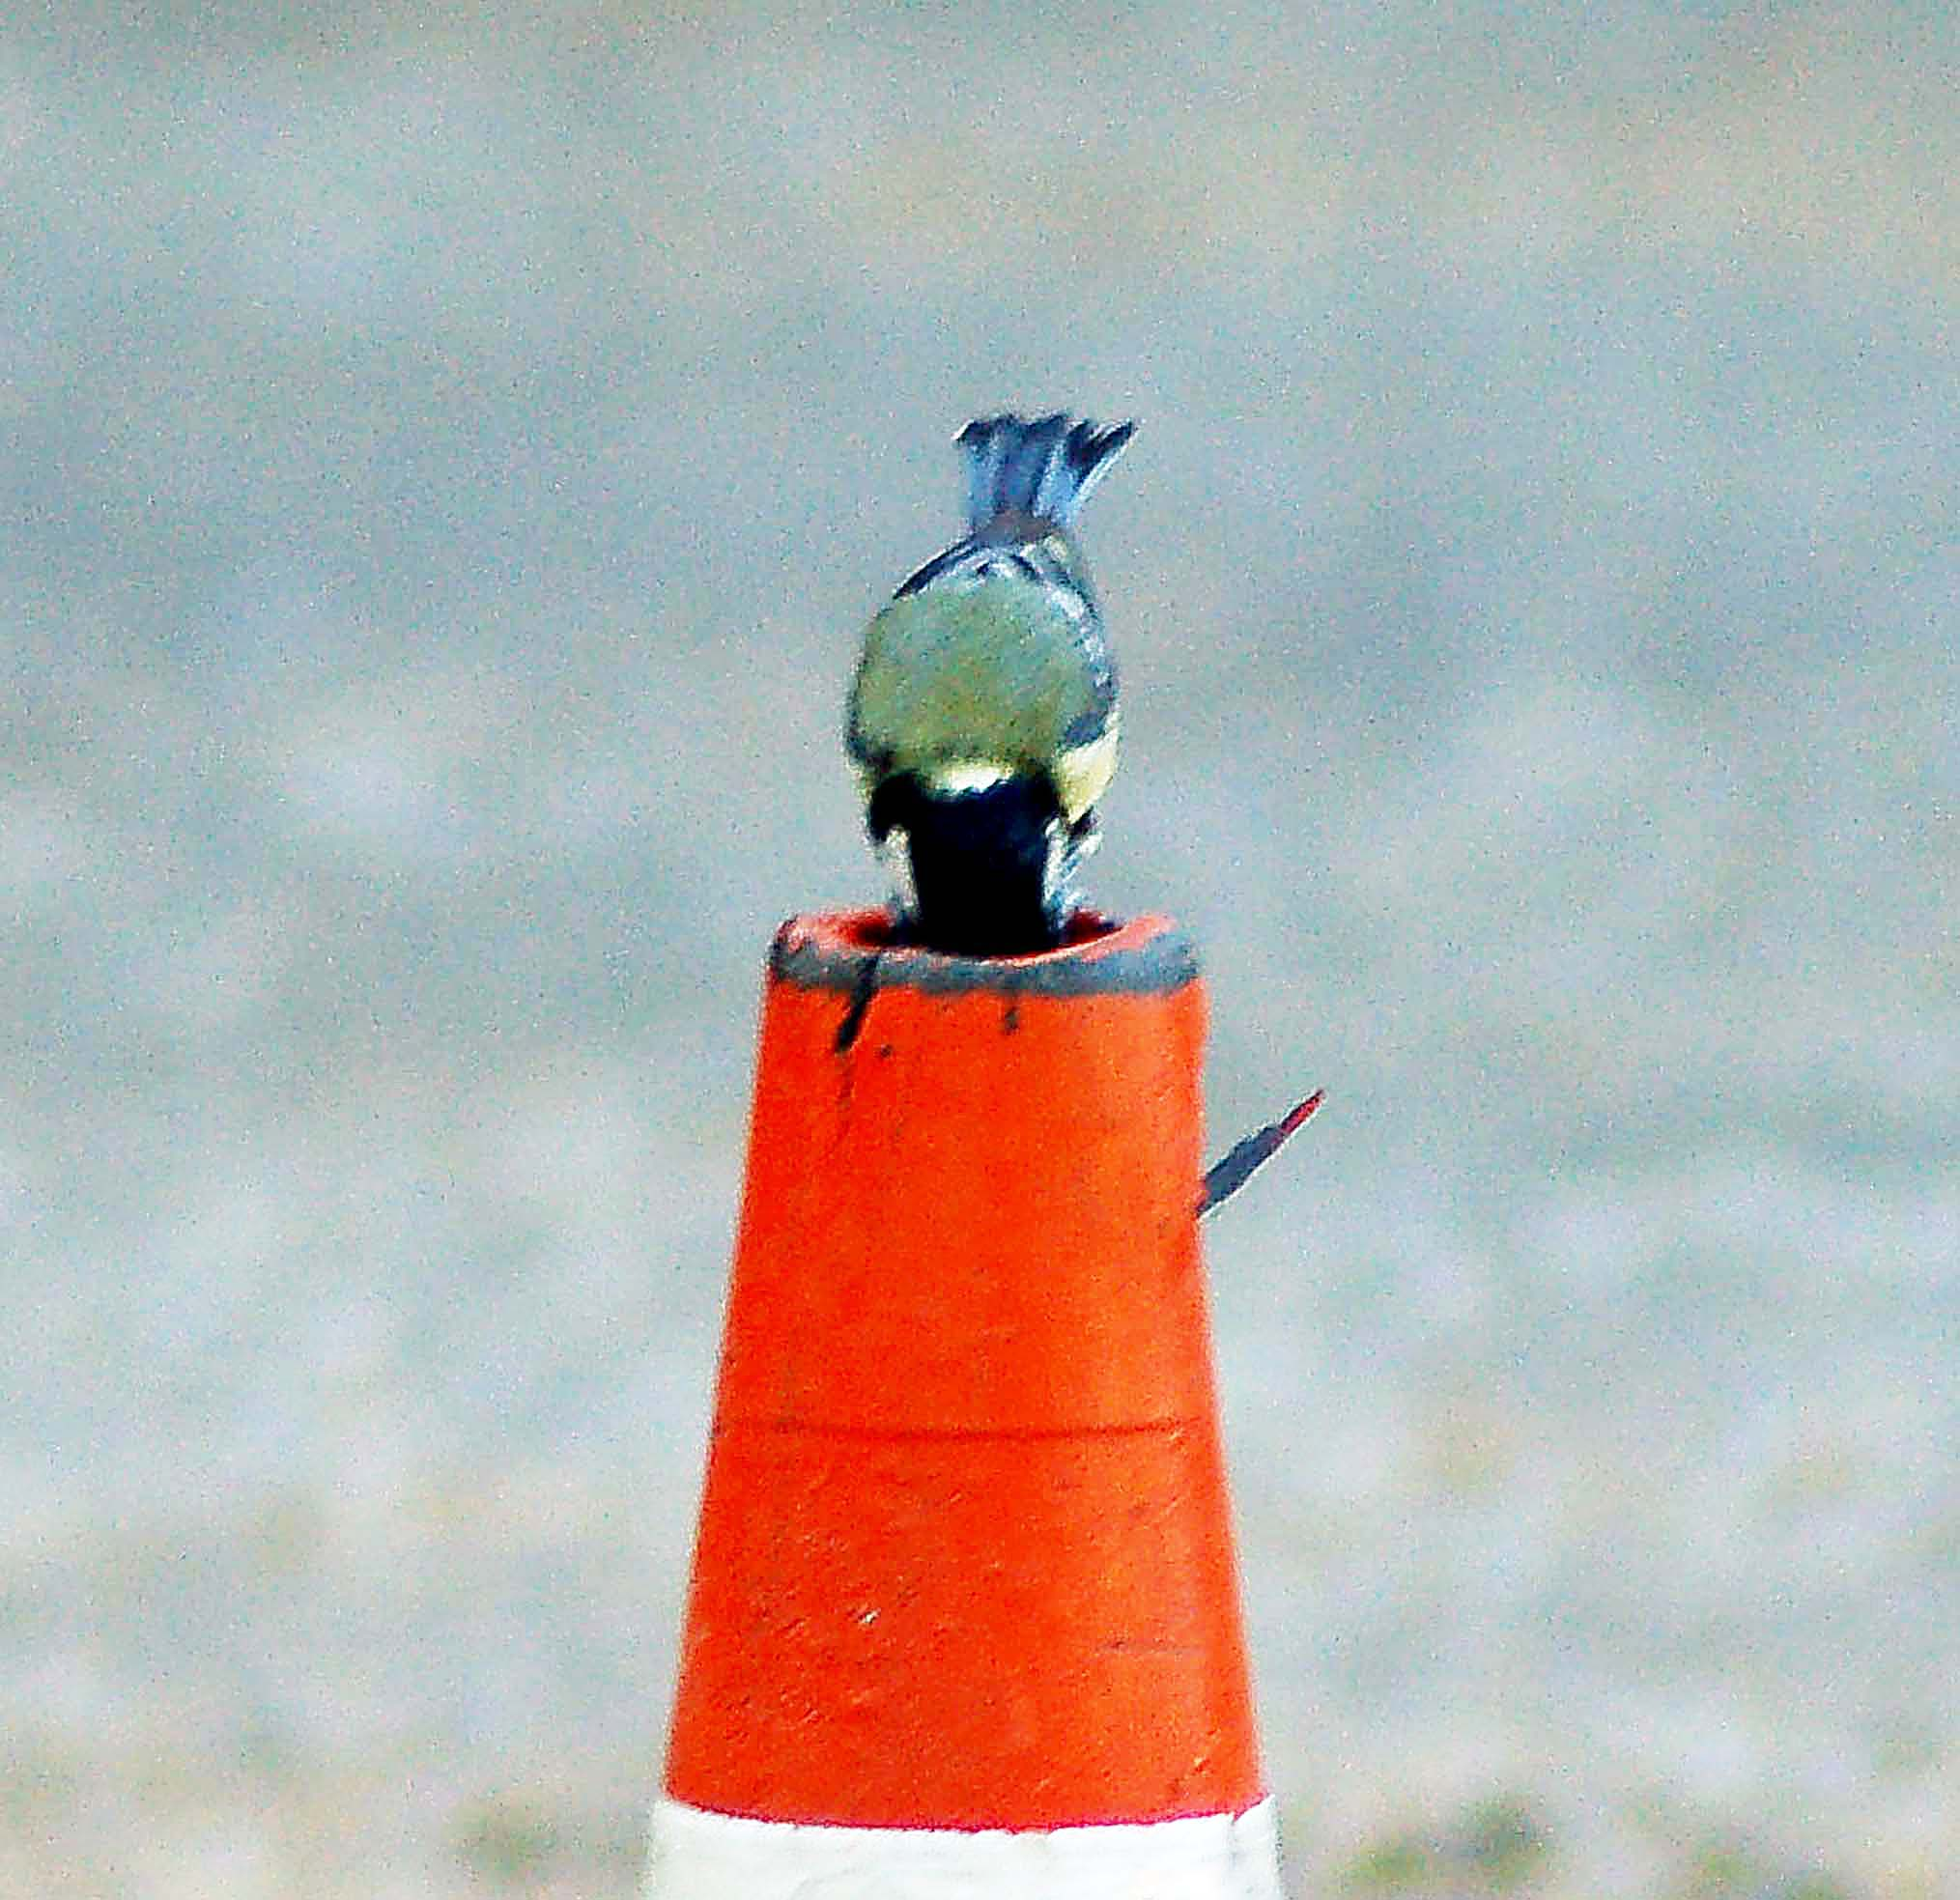 Birds make home in a traffic cone